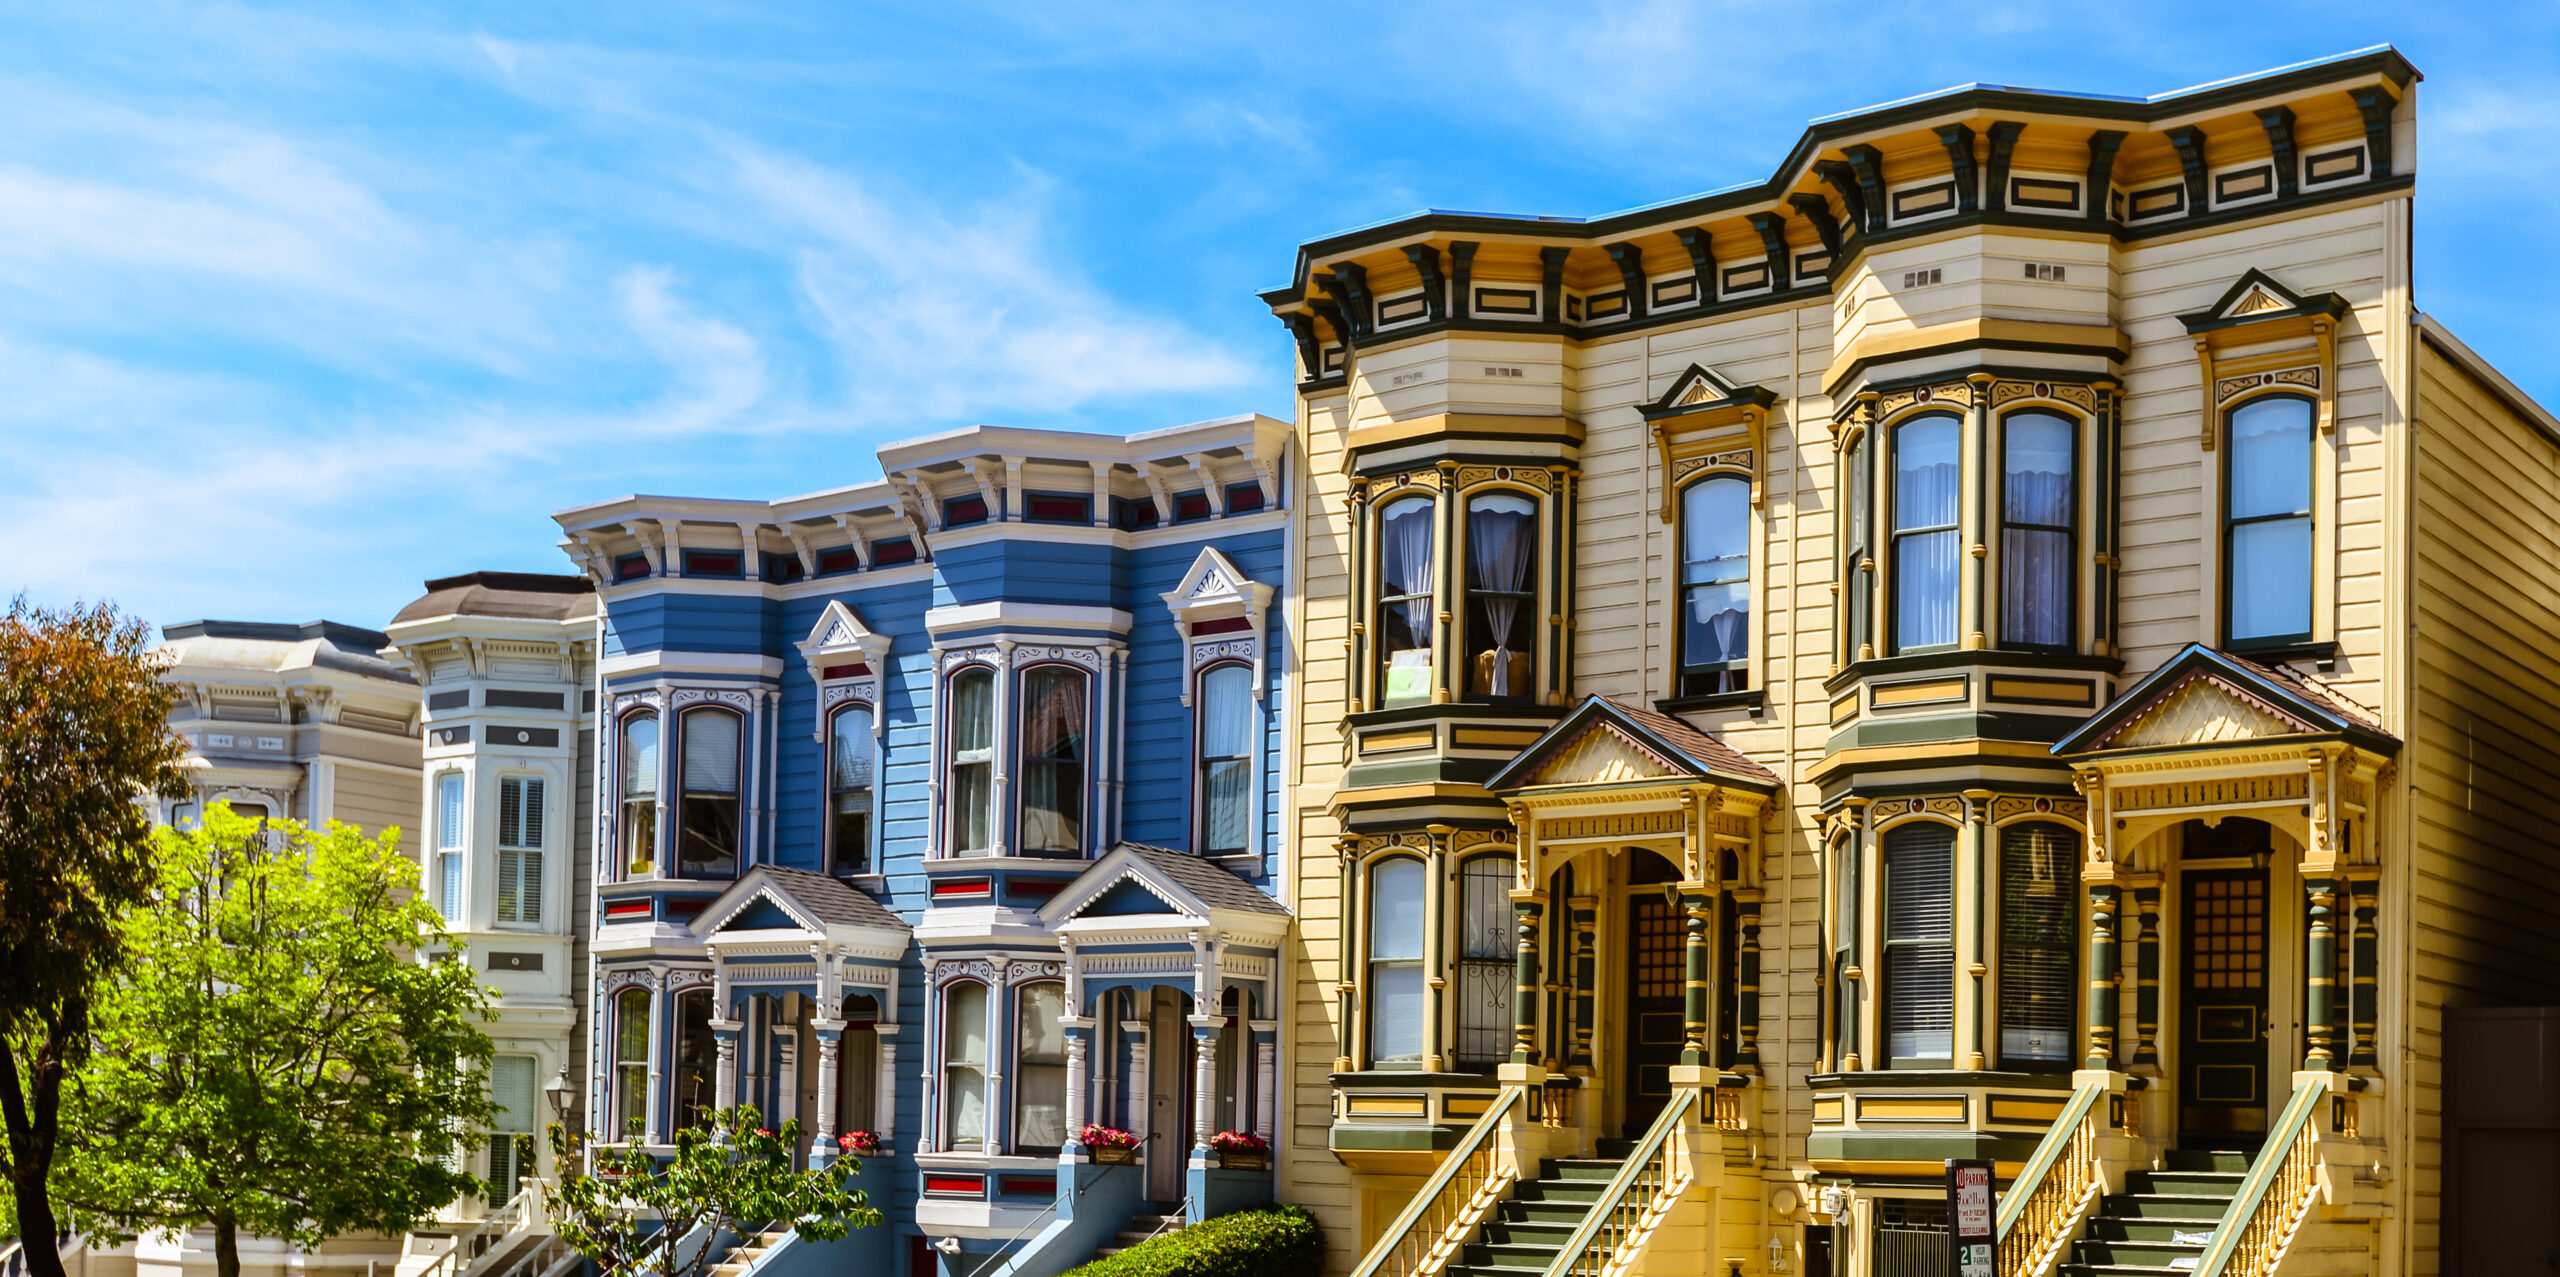 Photo of Haight and Ashbury neighborhood featuring quintessential Victorian homes.